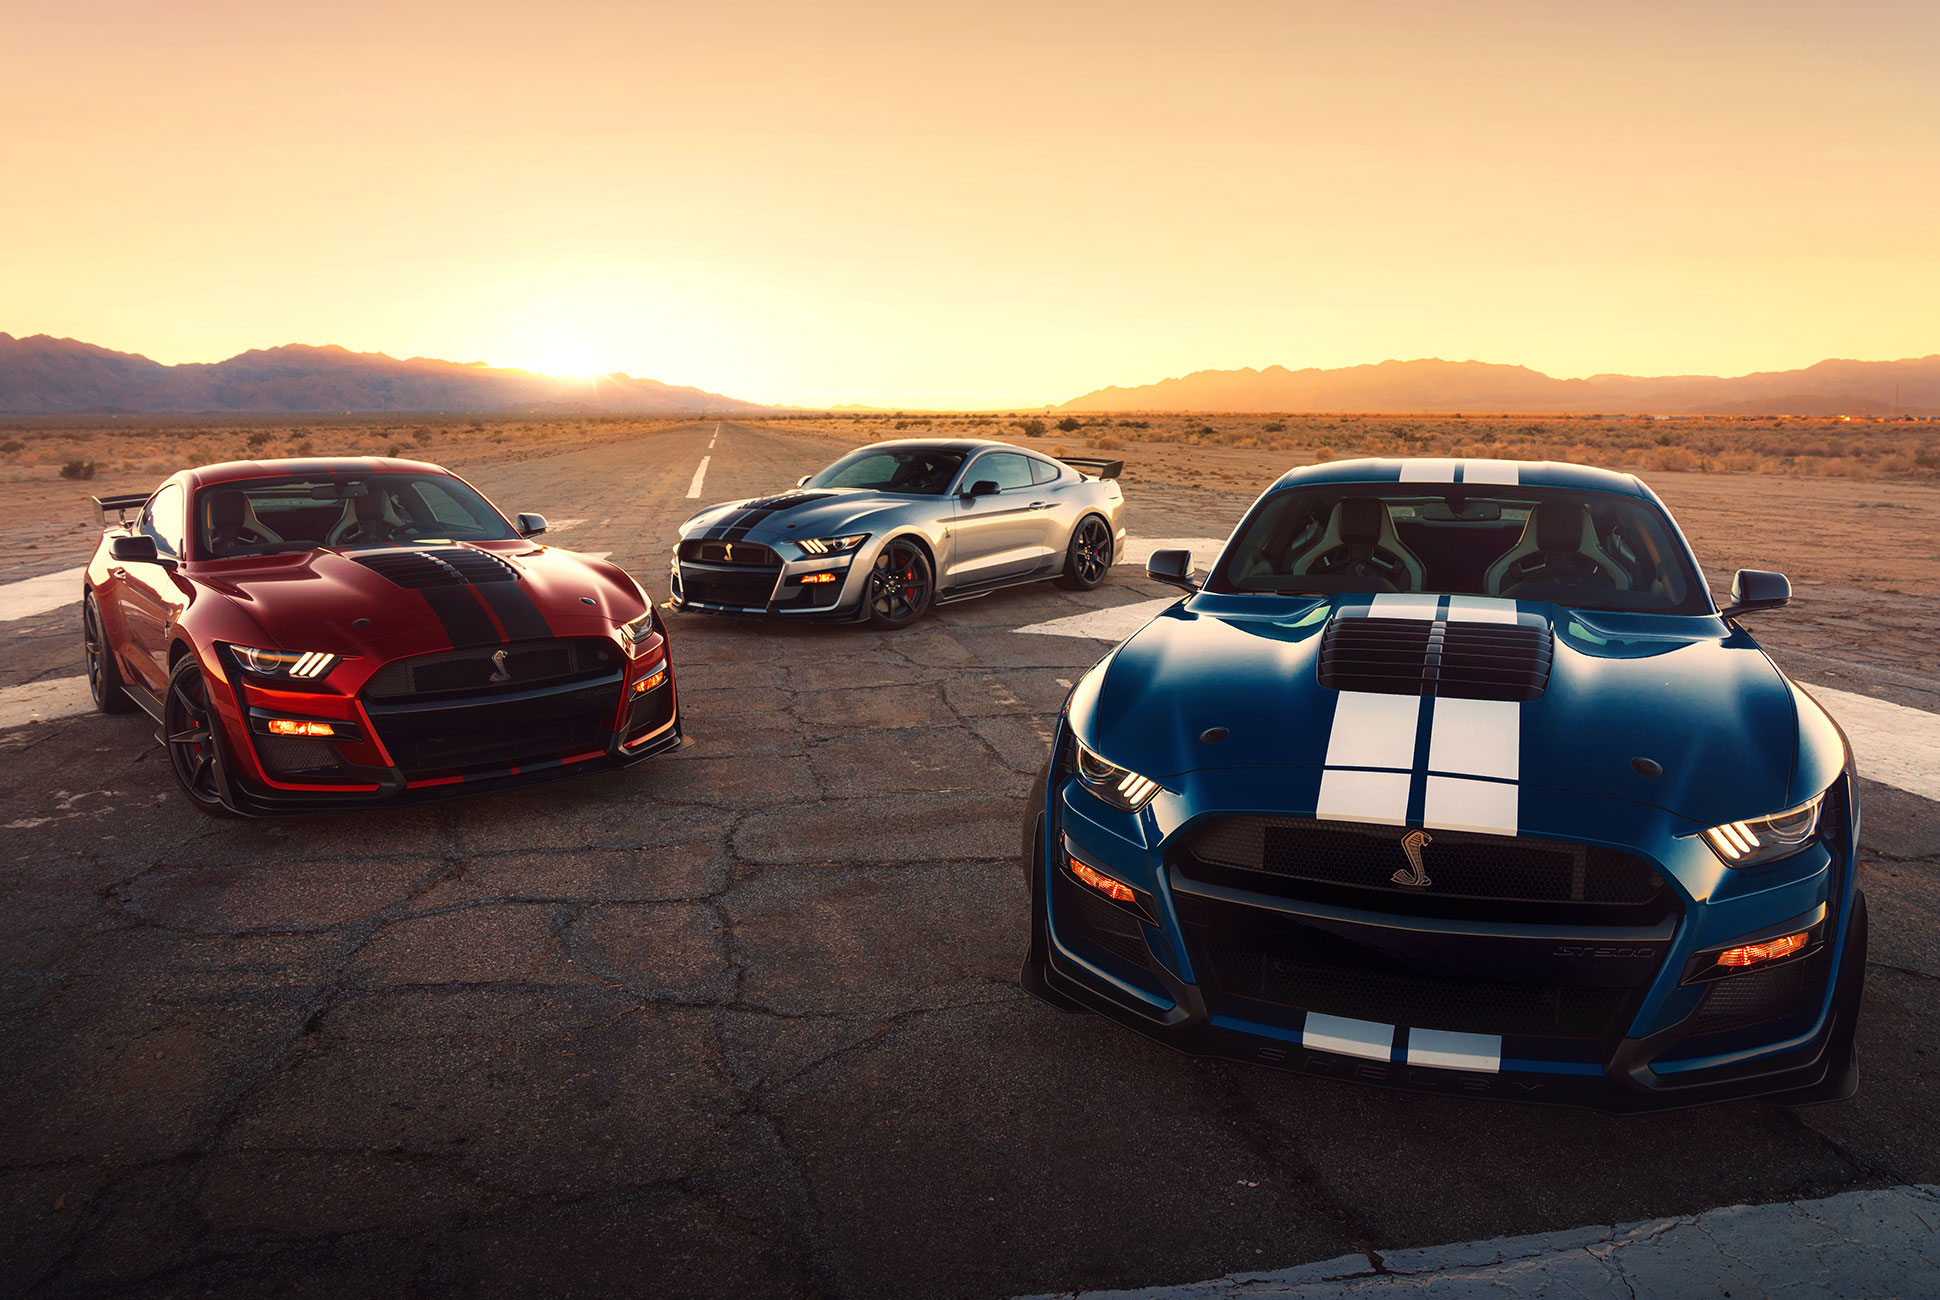 2020-ford-mustang-shelby-gt500-racing-stripes-gear-patrol.jpg